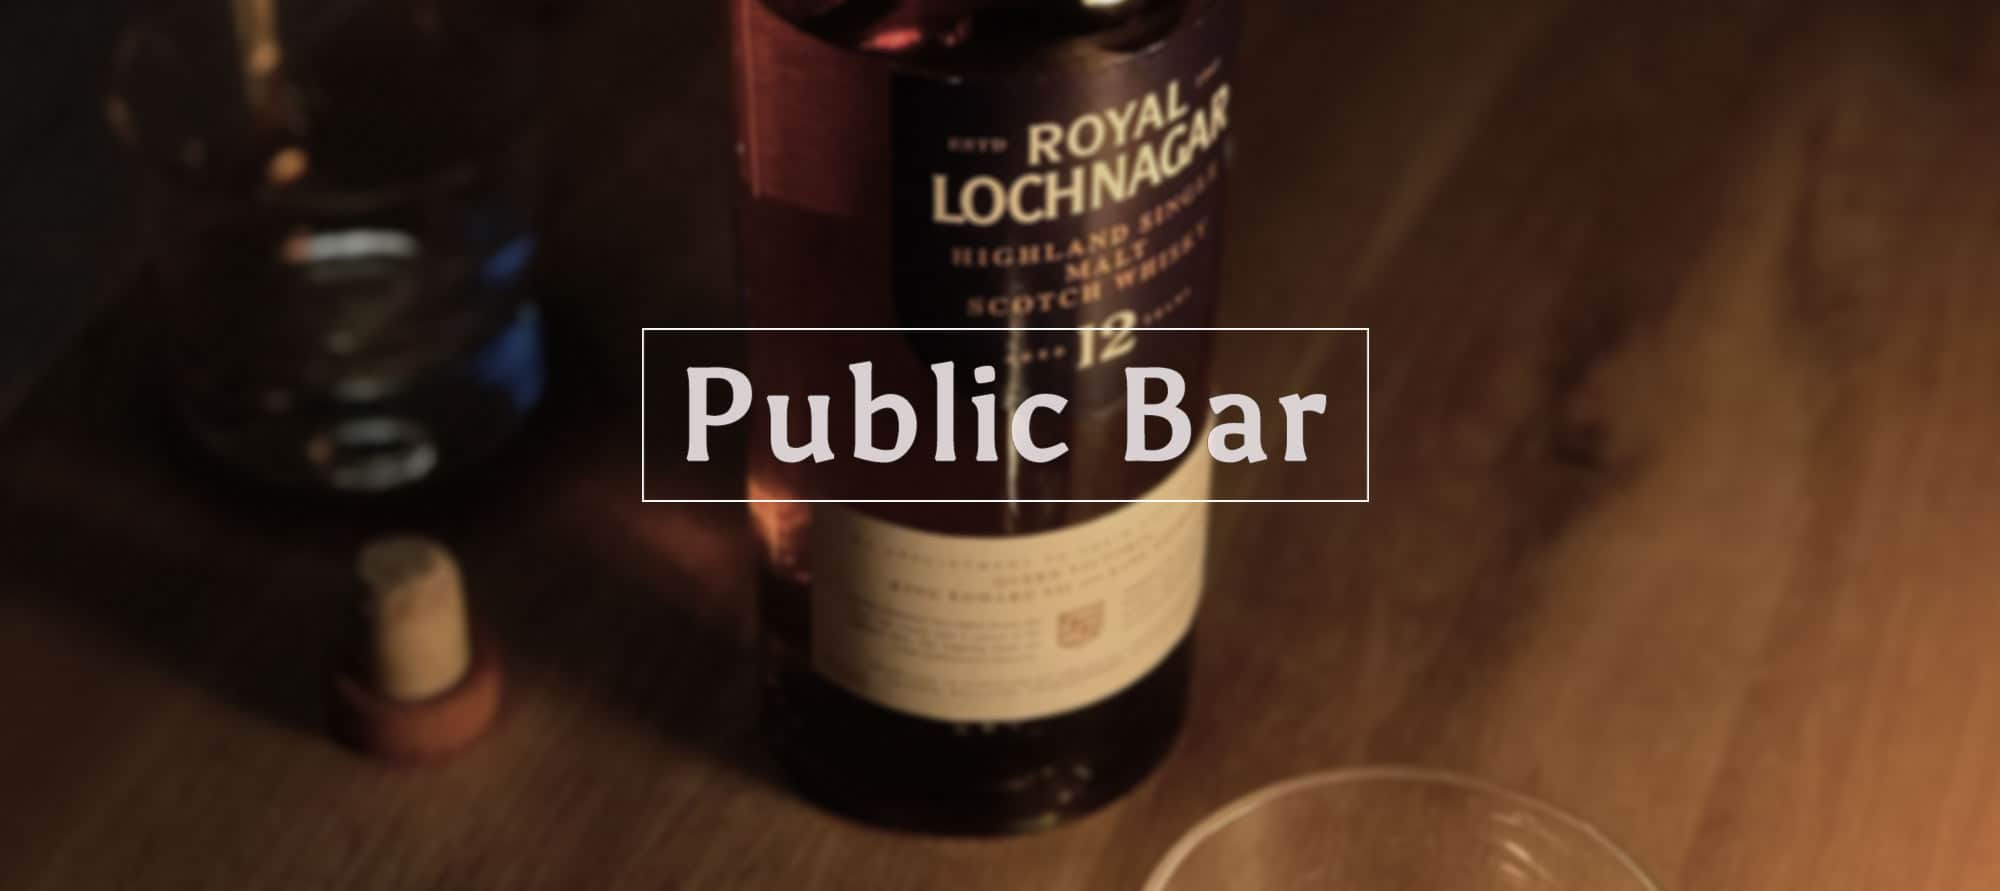 The Public Bar at the Alexandra Hotel Ballater